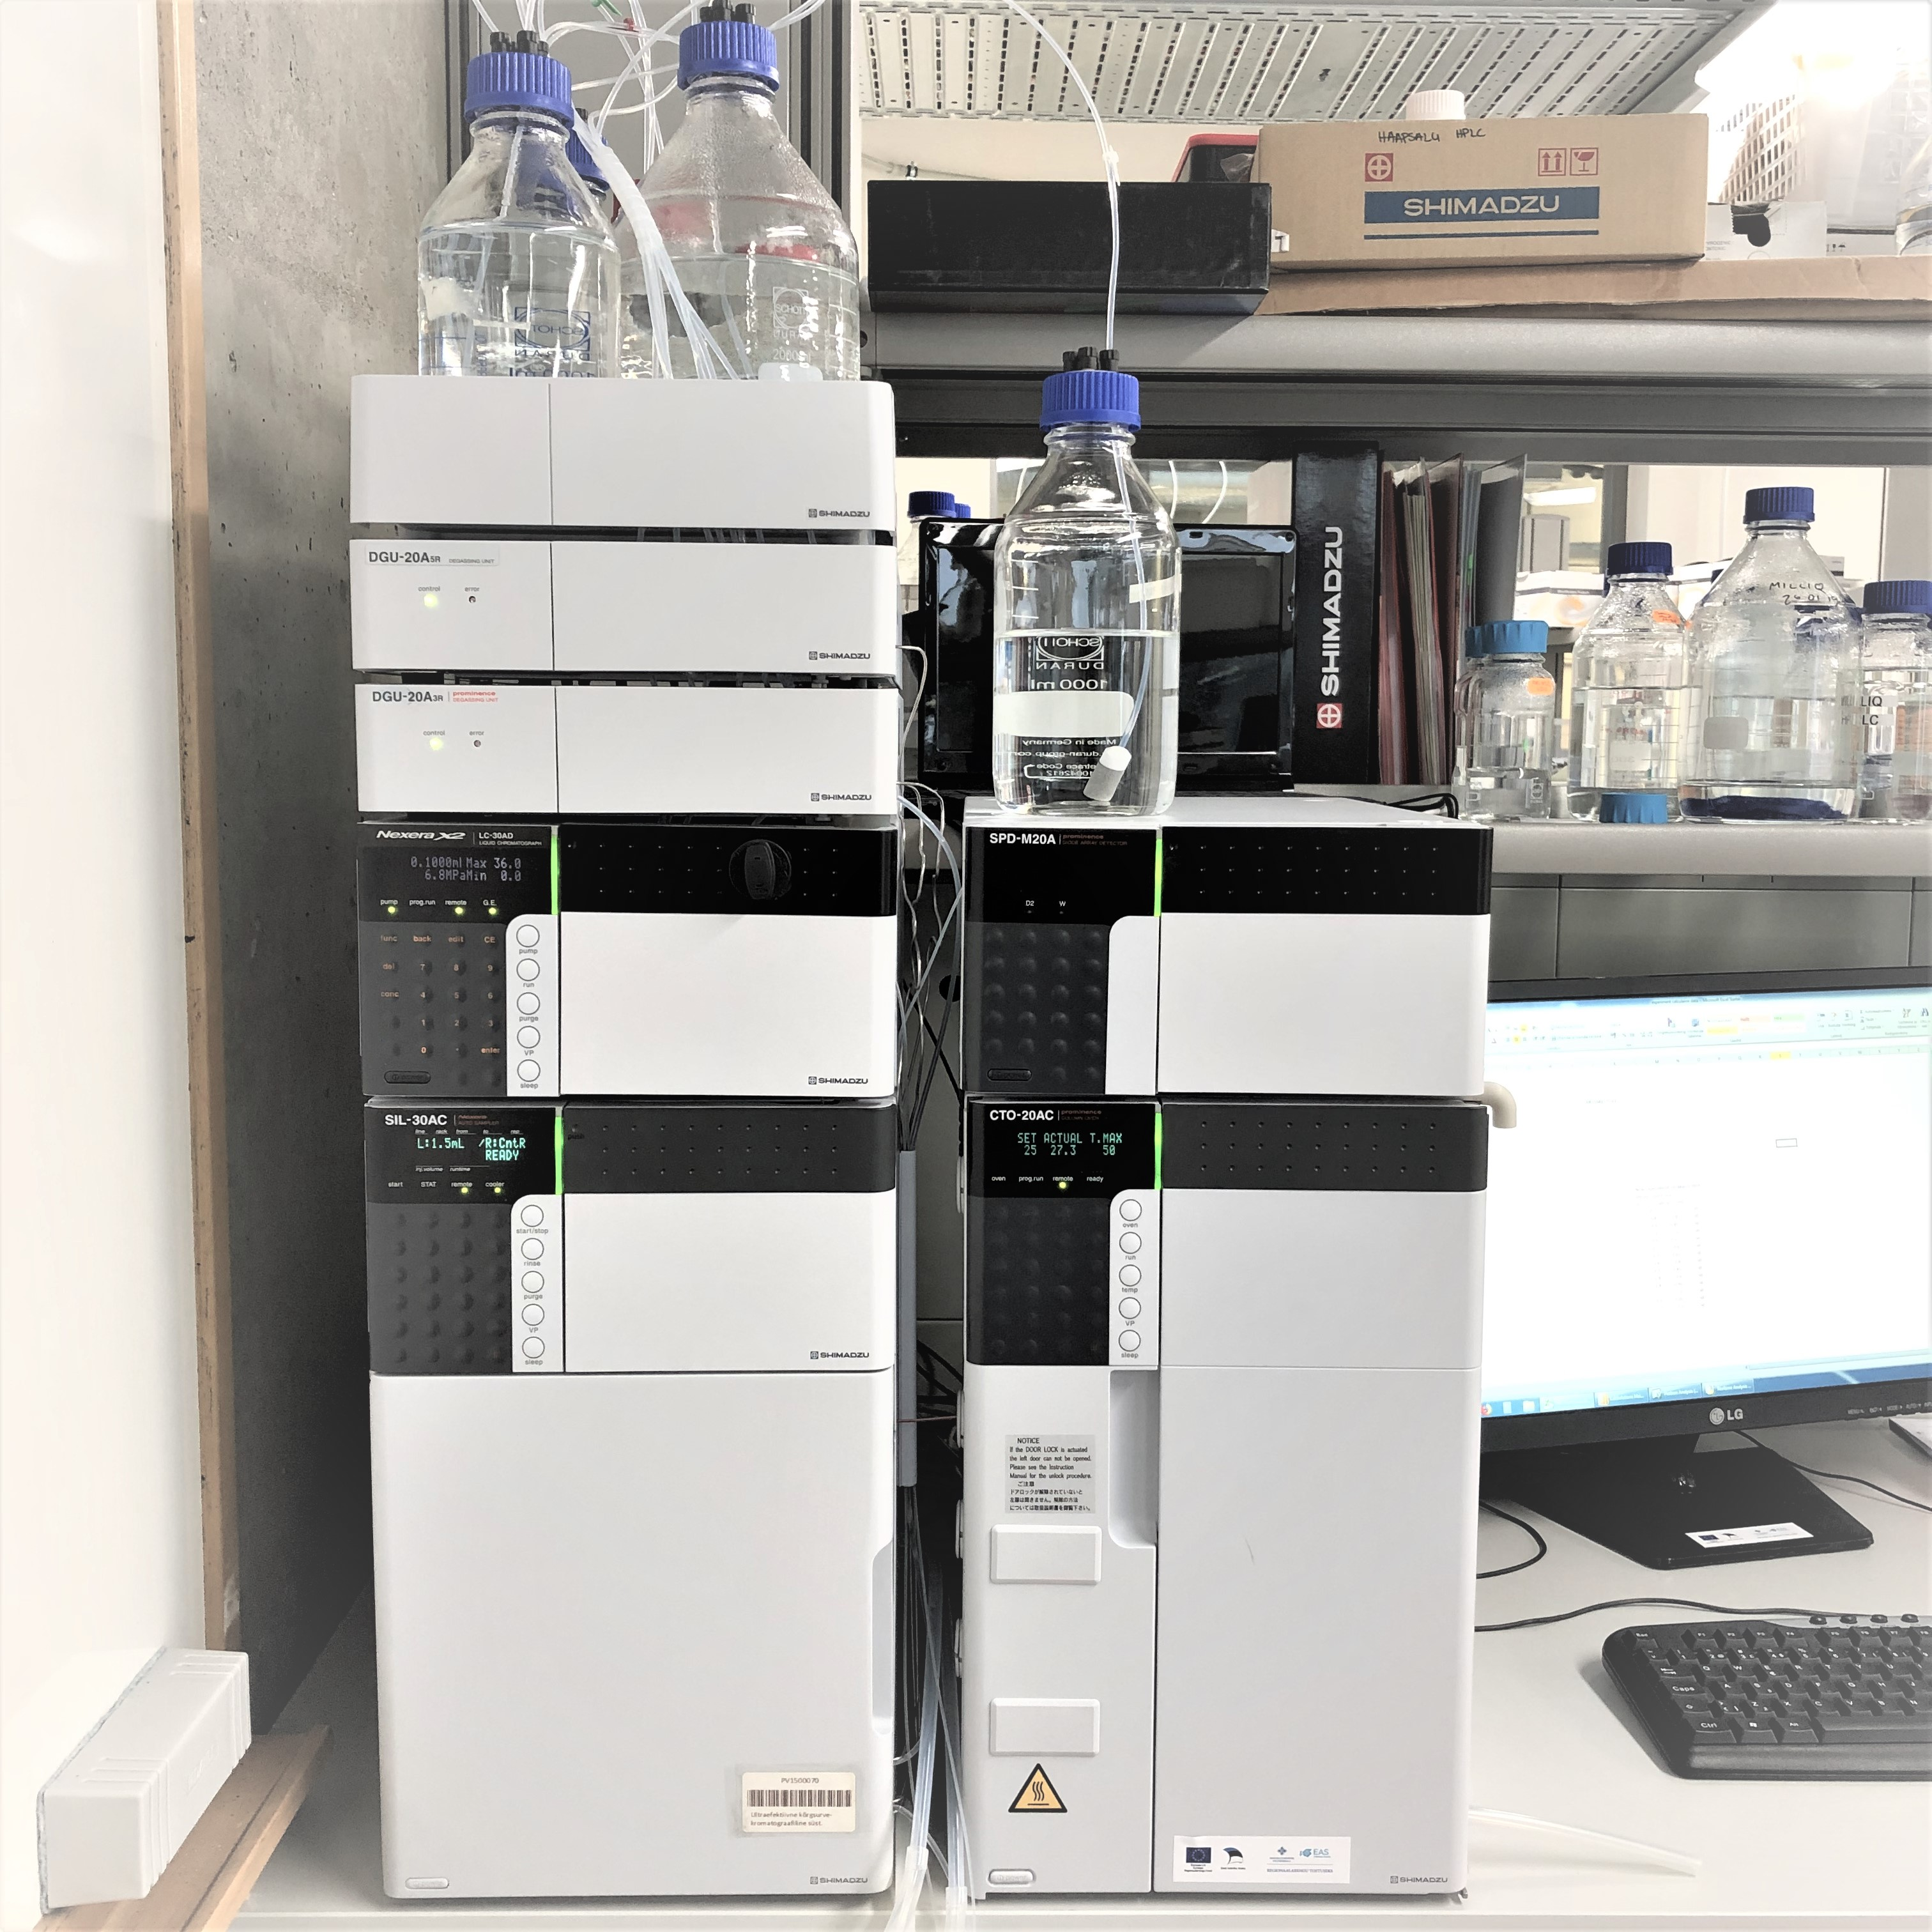 Shimadzu Ultra-High Performance Liquid Chromatography System